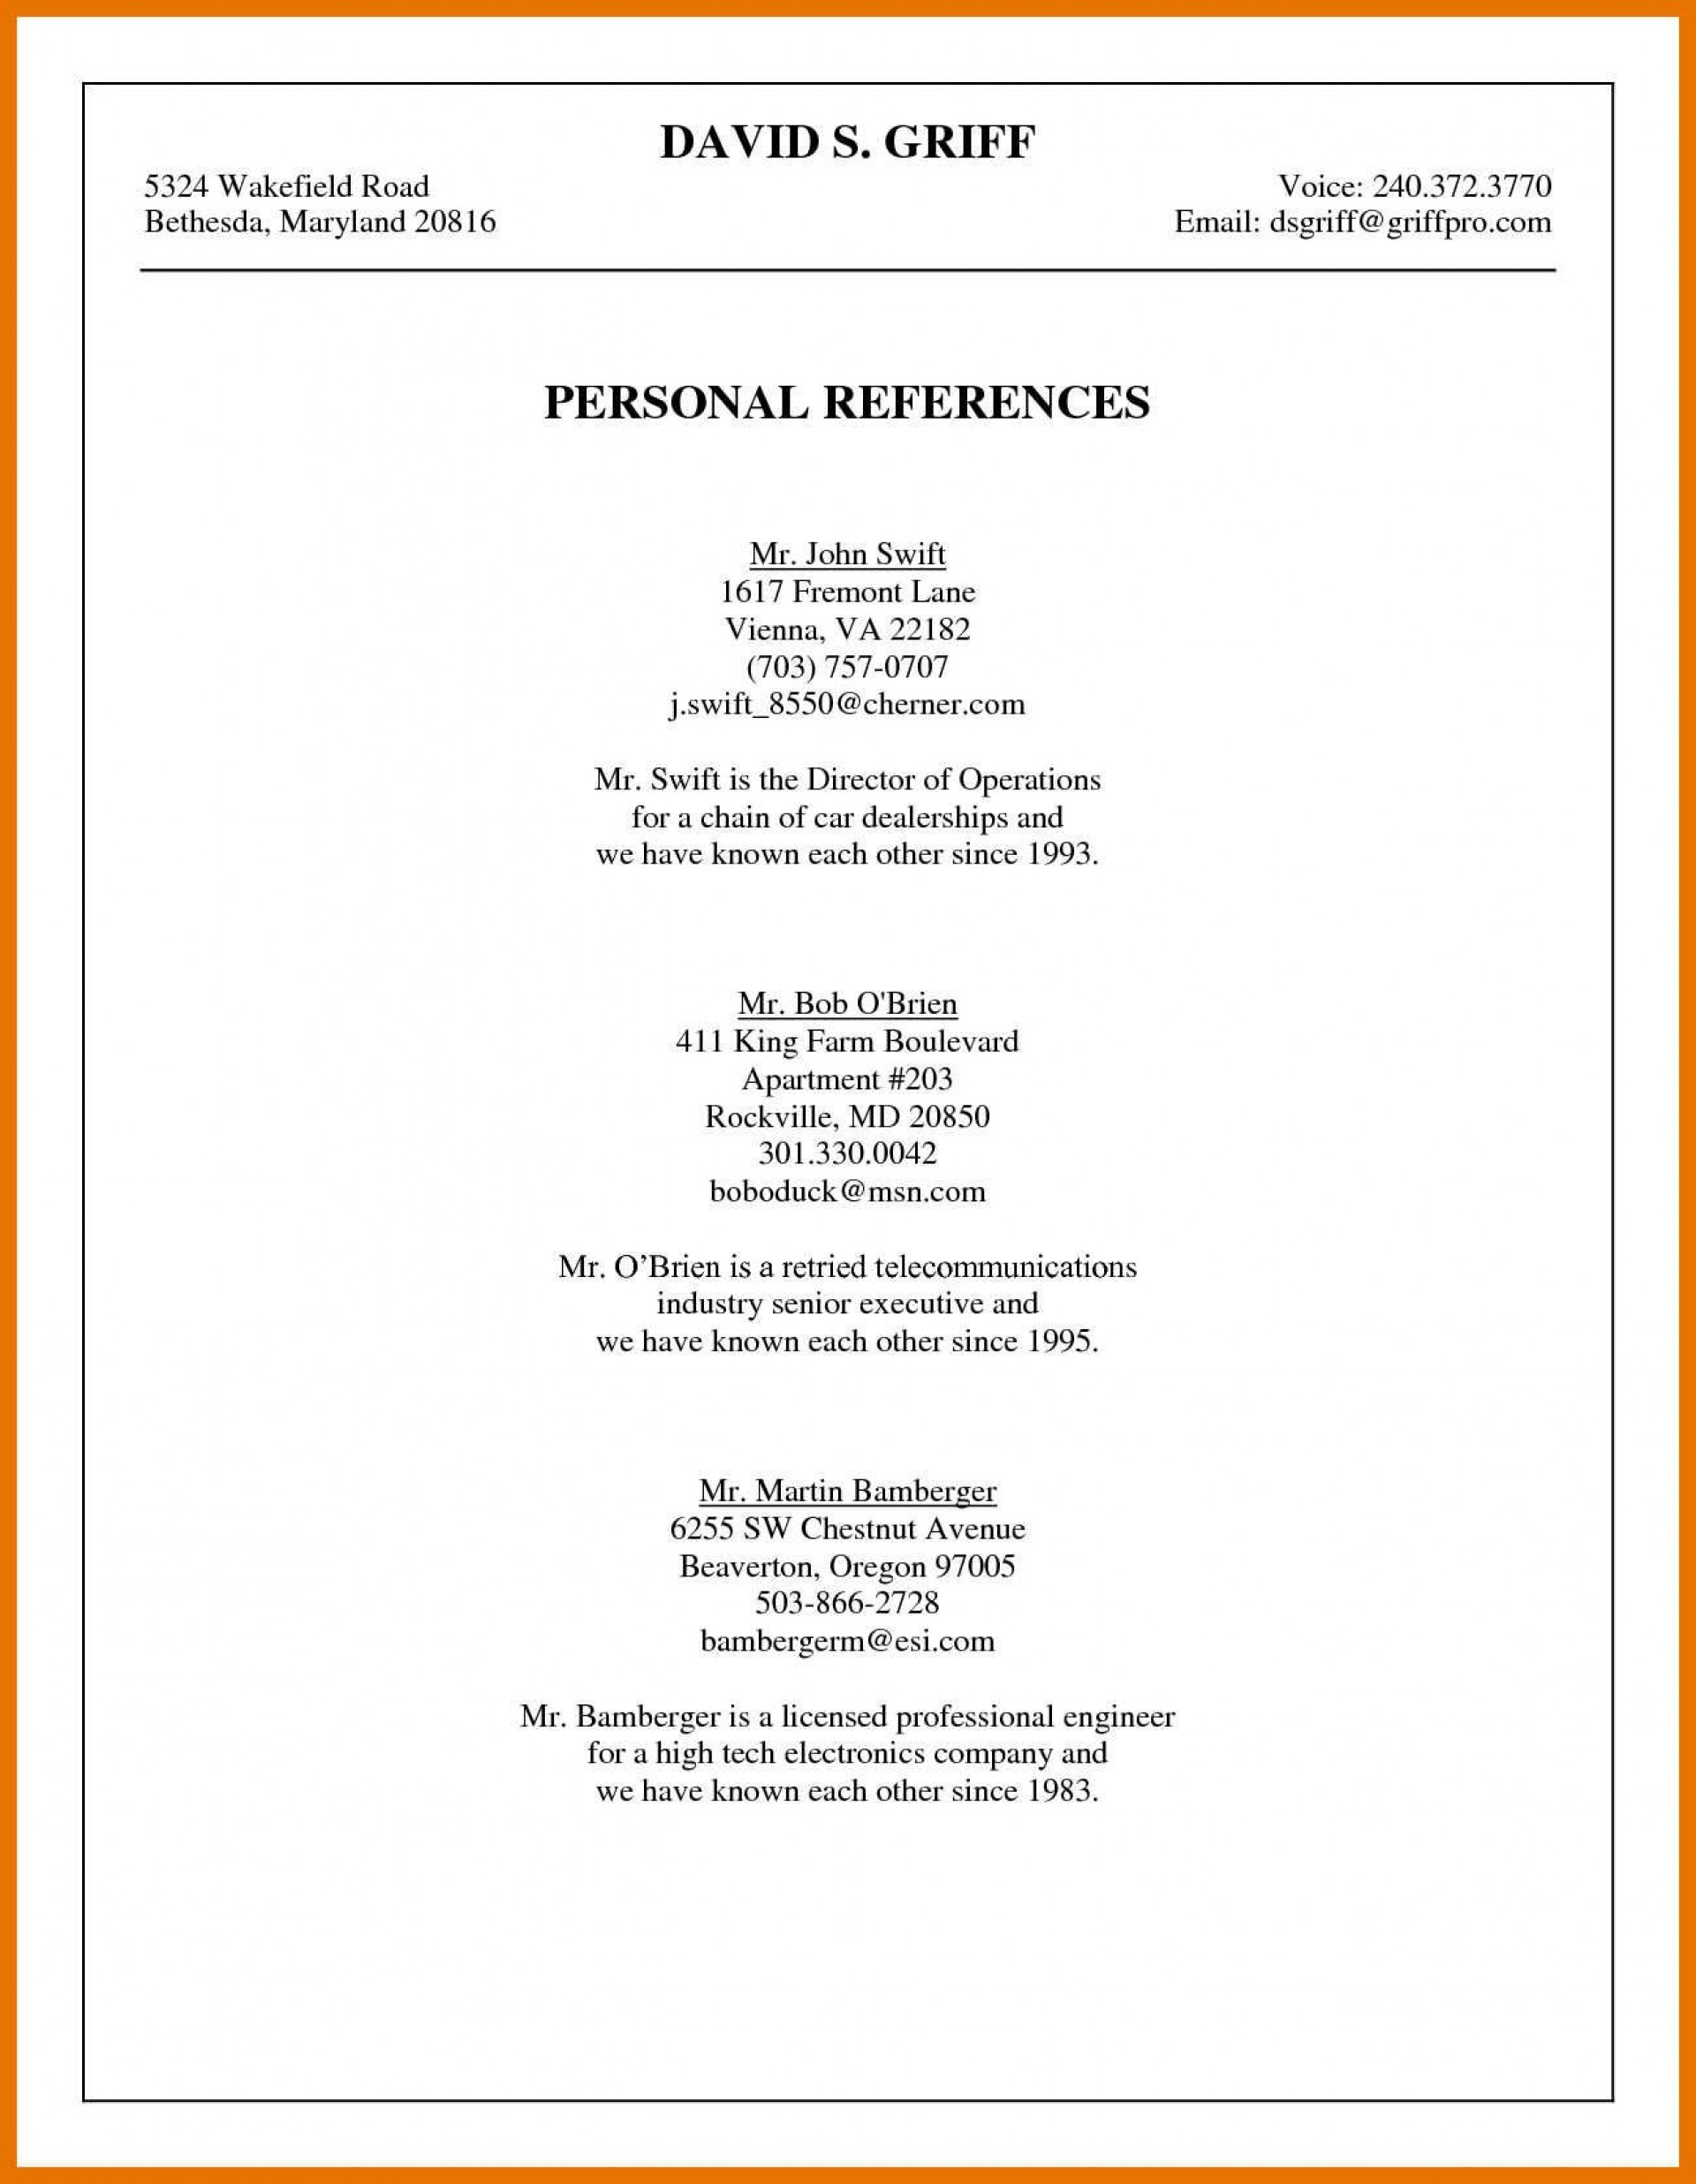 004 Excellent List Of Reference Template High Resolution  Employment Format Professional Free1920